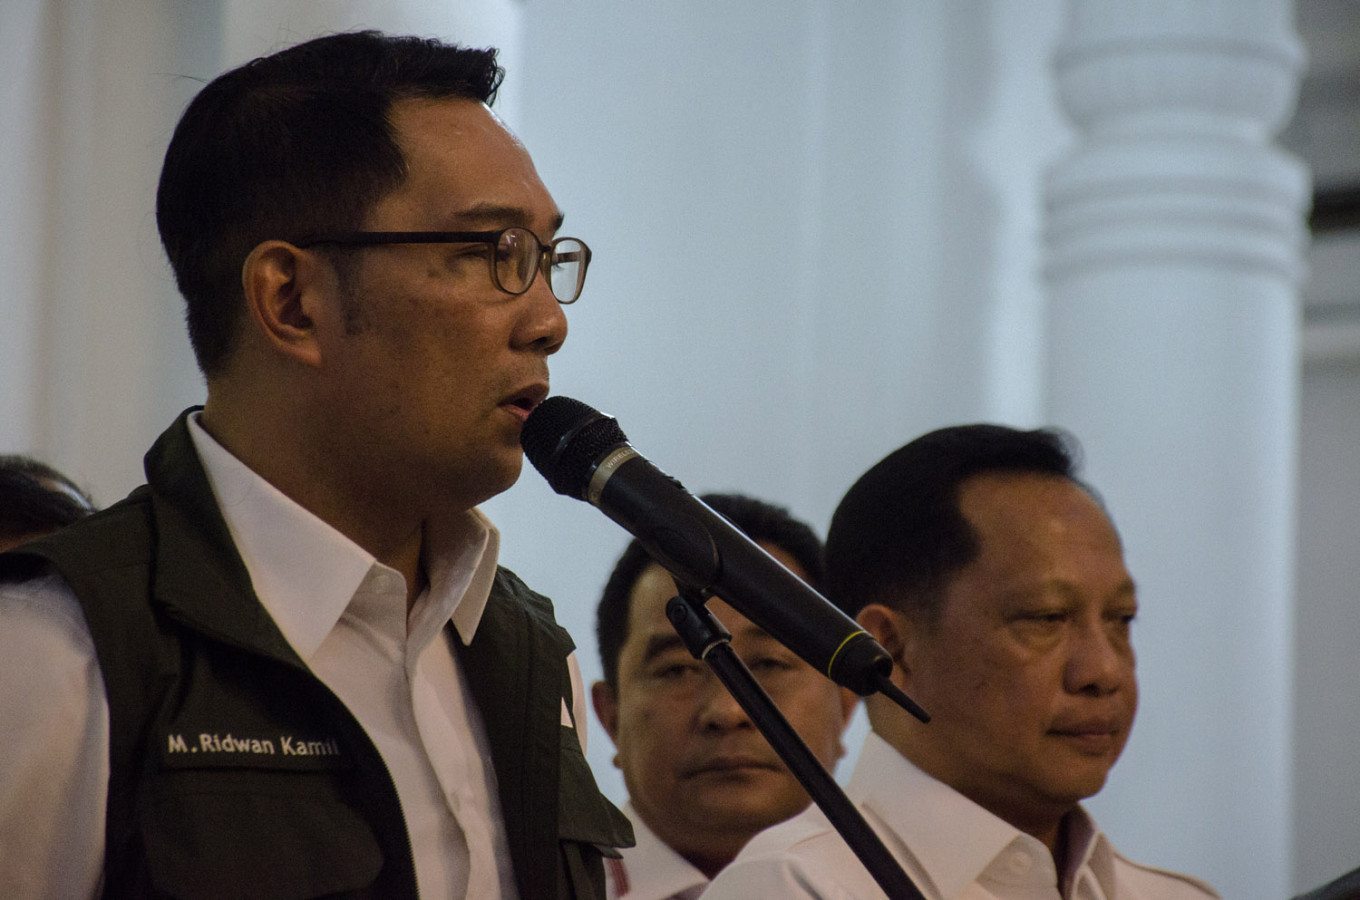 West Java Governor Ridwan Kamil signs up for COVID-19 vaccine trials